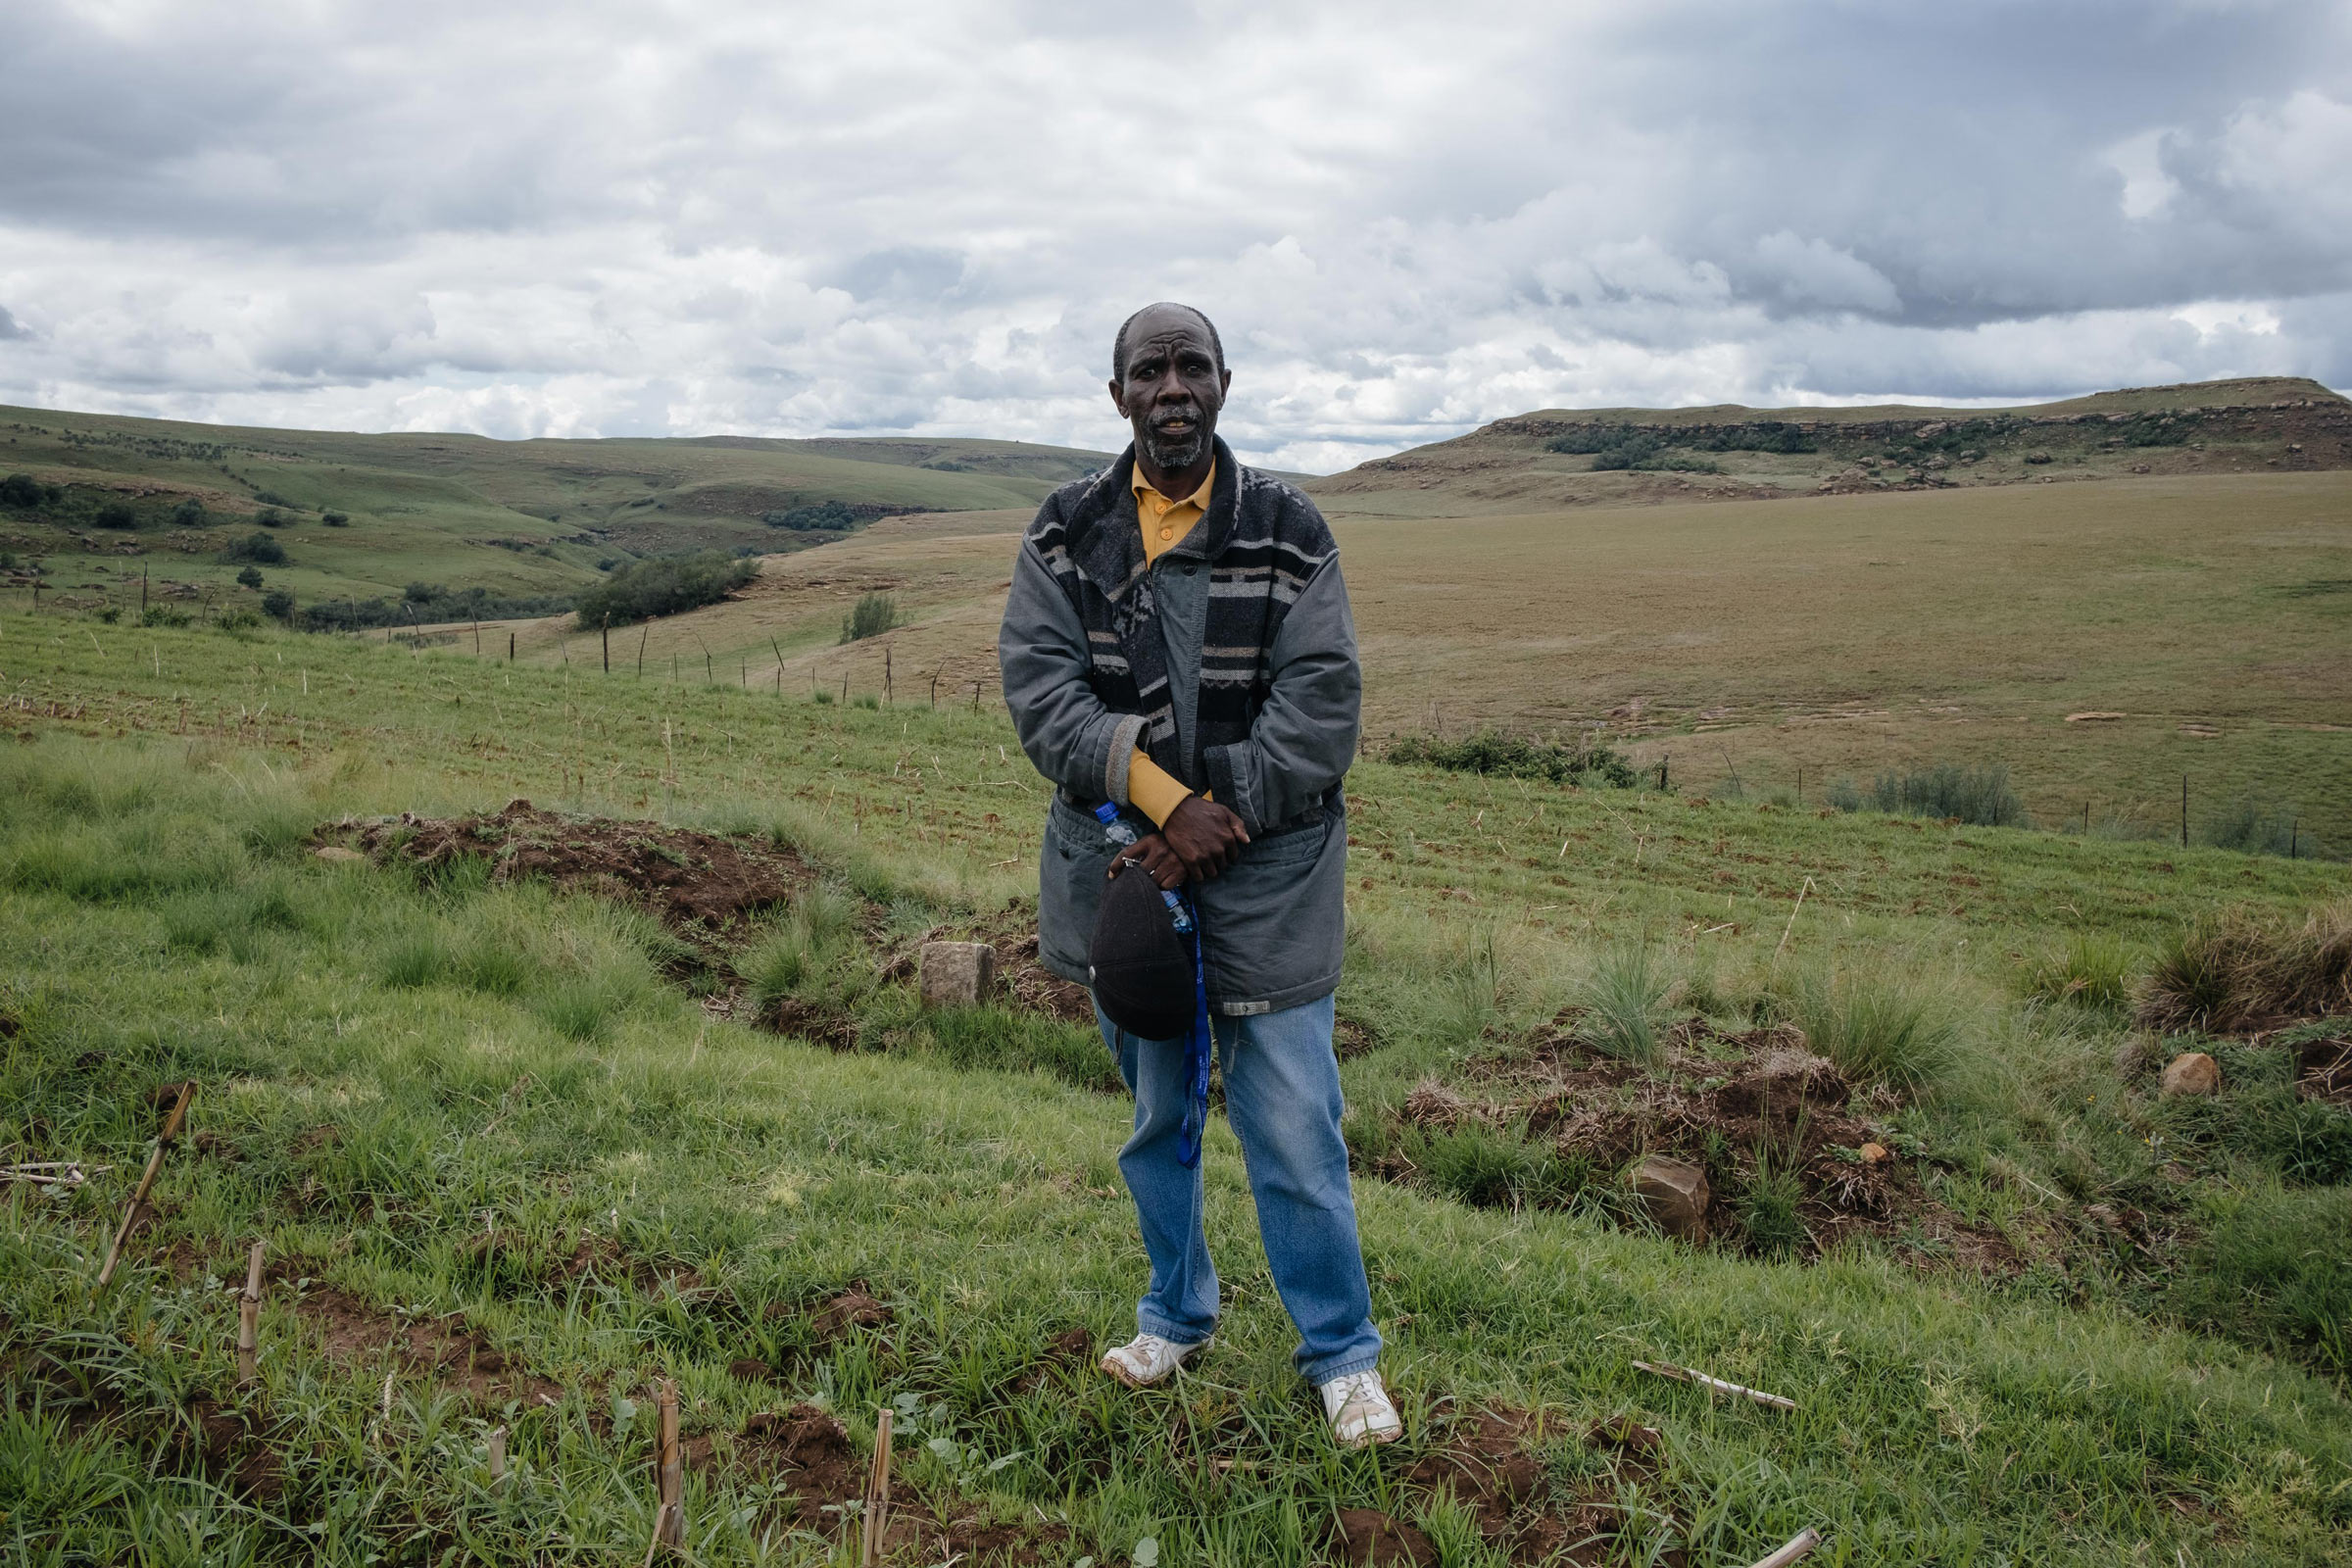 11 December 2019: George Nqoko at the graves of his ancestors on Orla Farm. Since the eviction, it has become difficult for him to access this area.